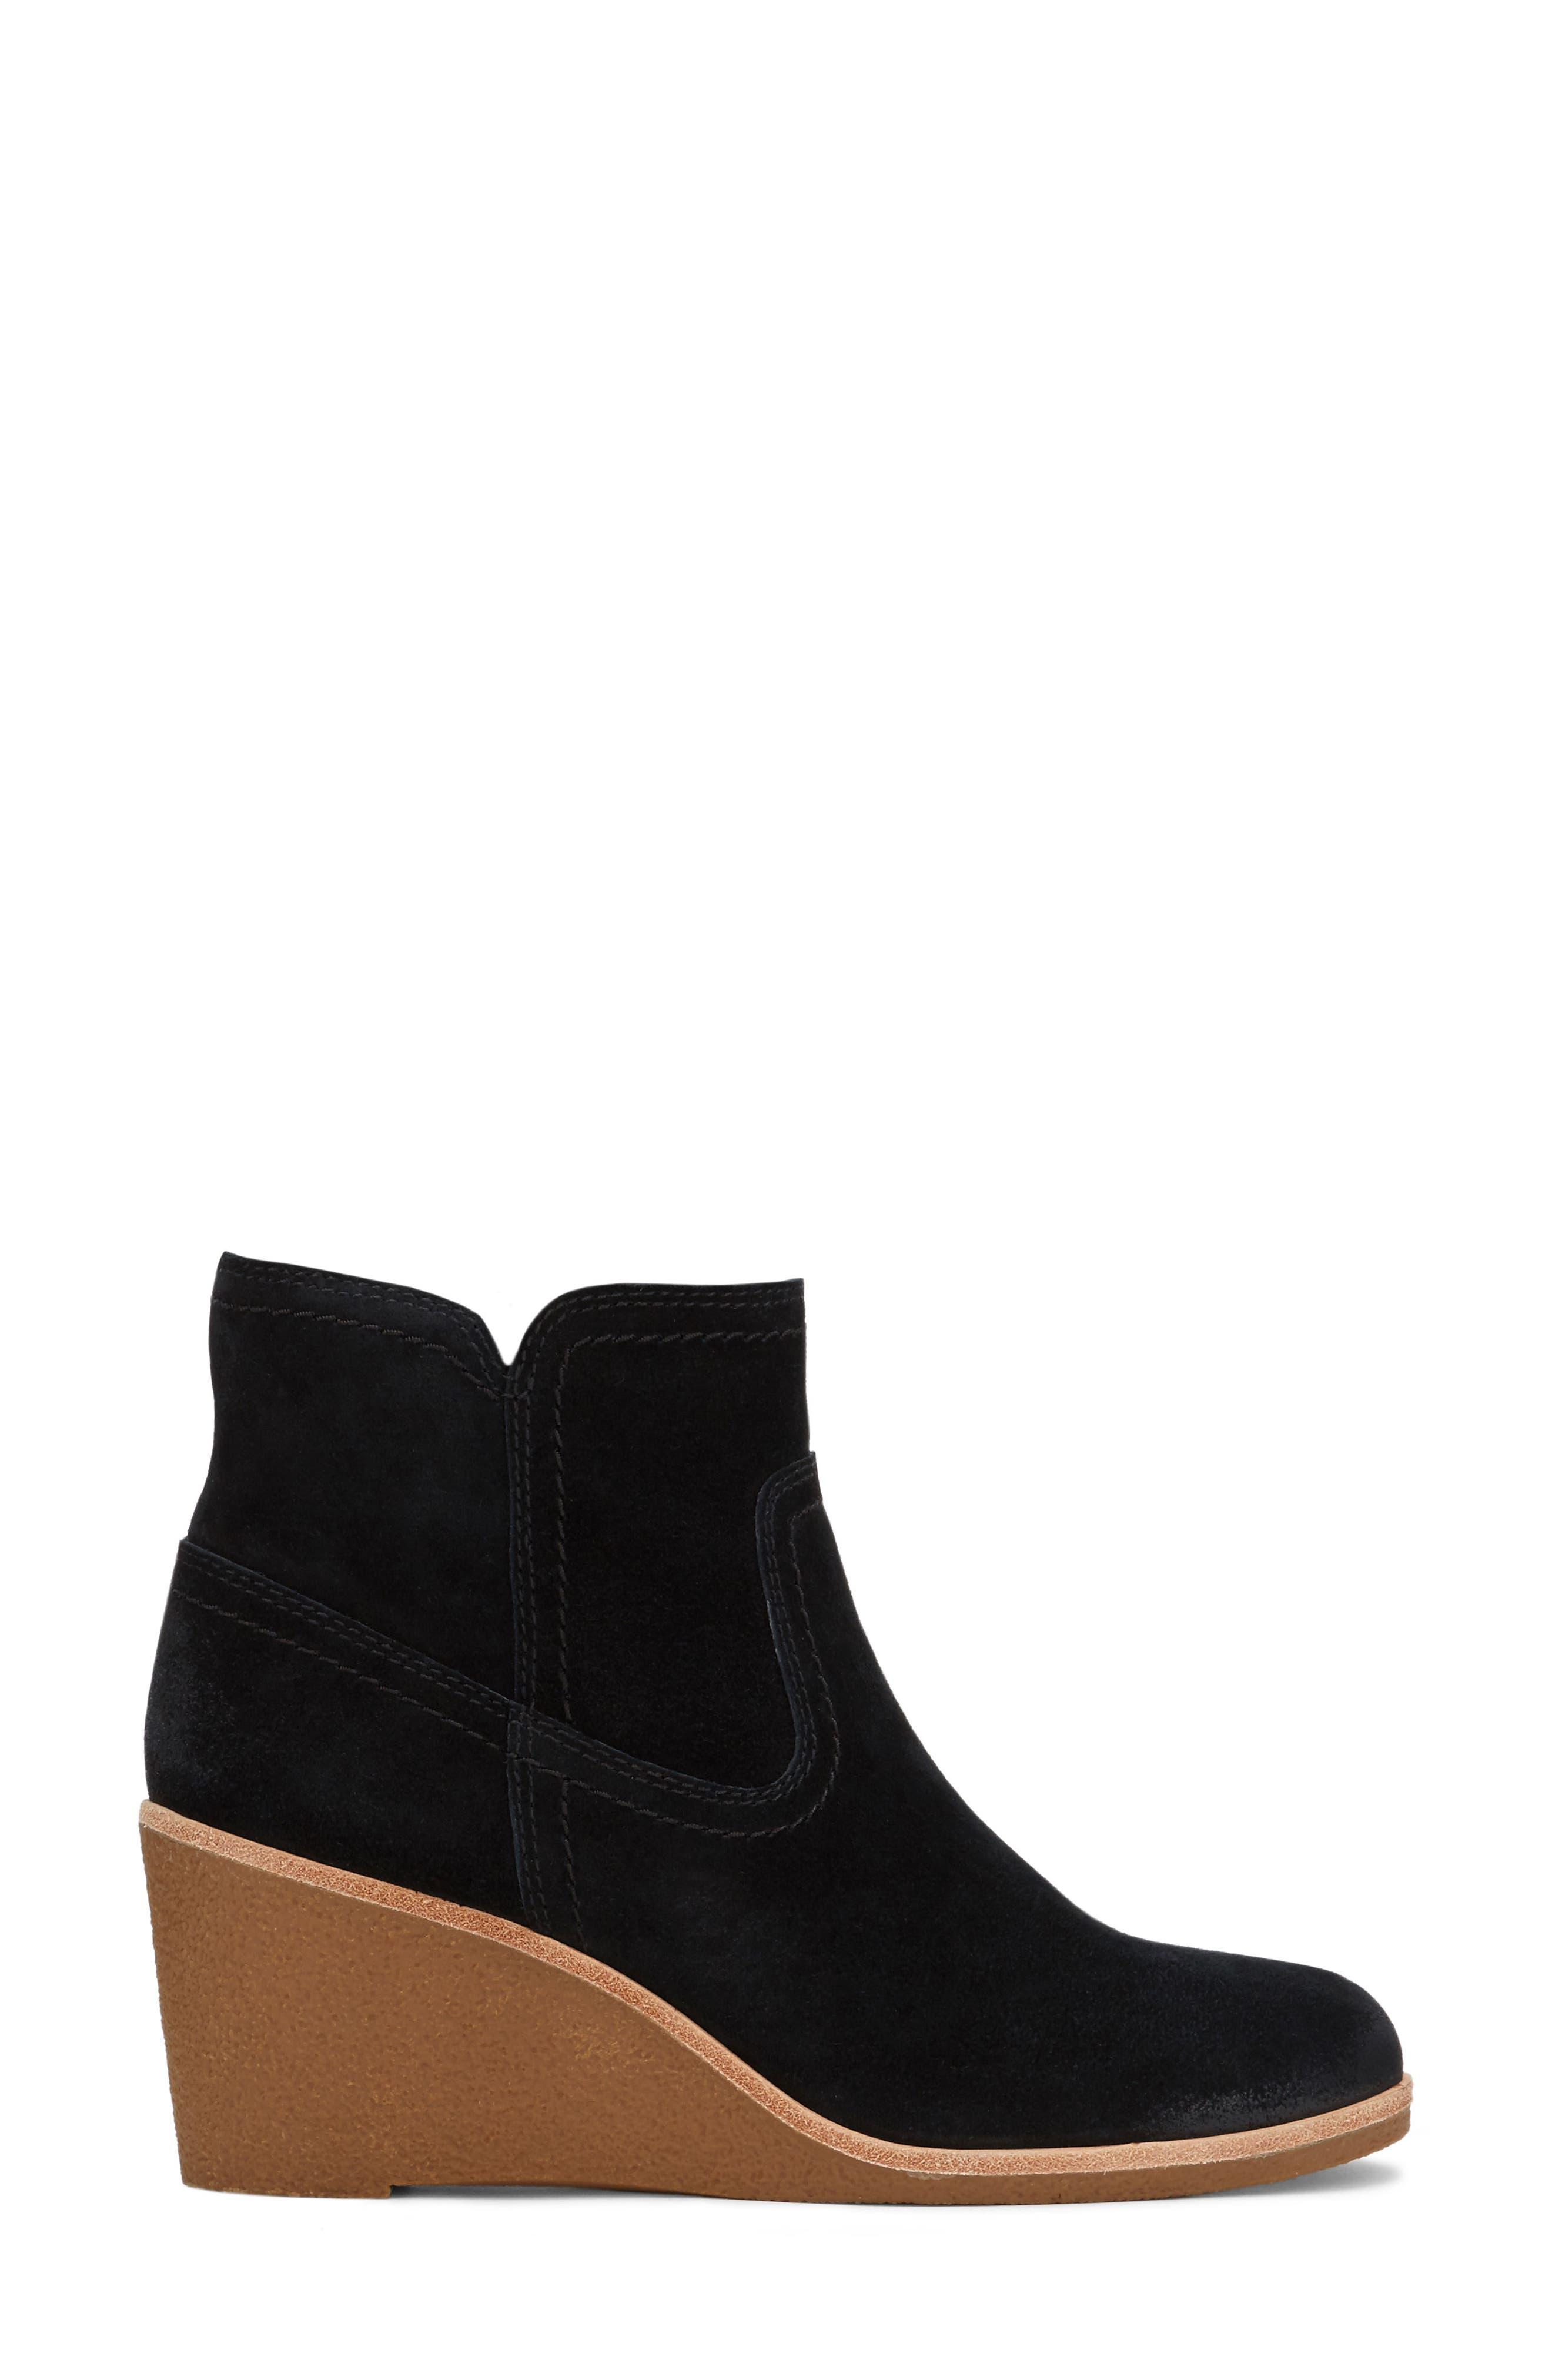 Boots All Women | Nordstrom